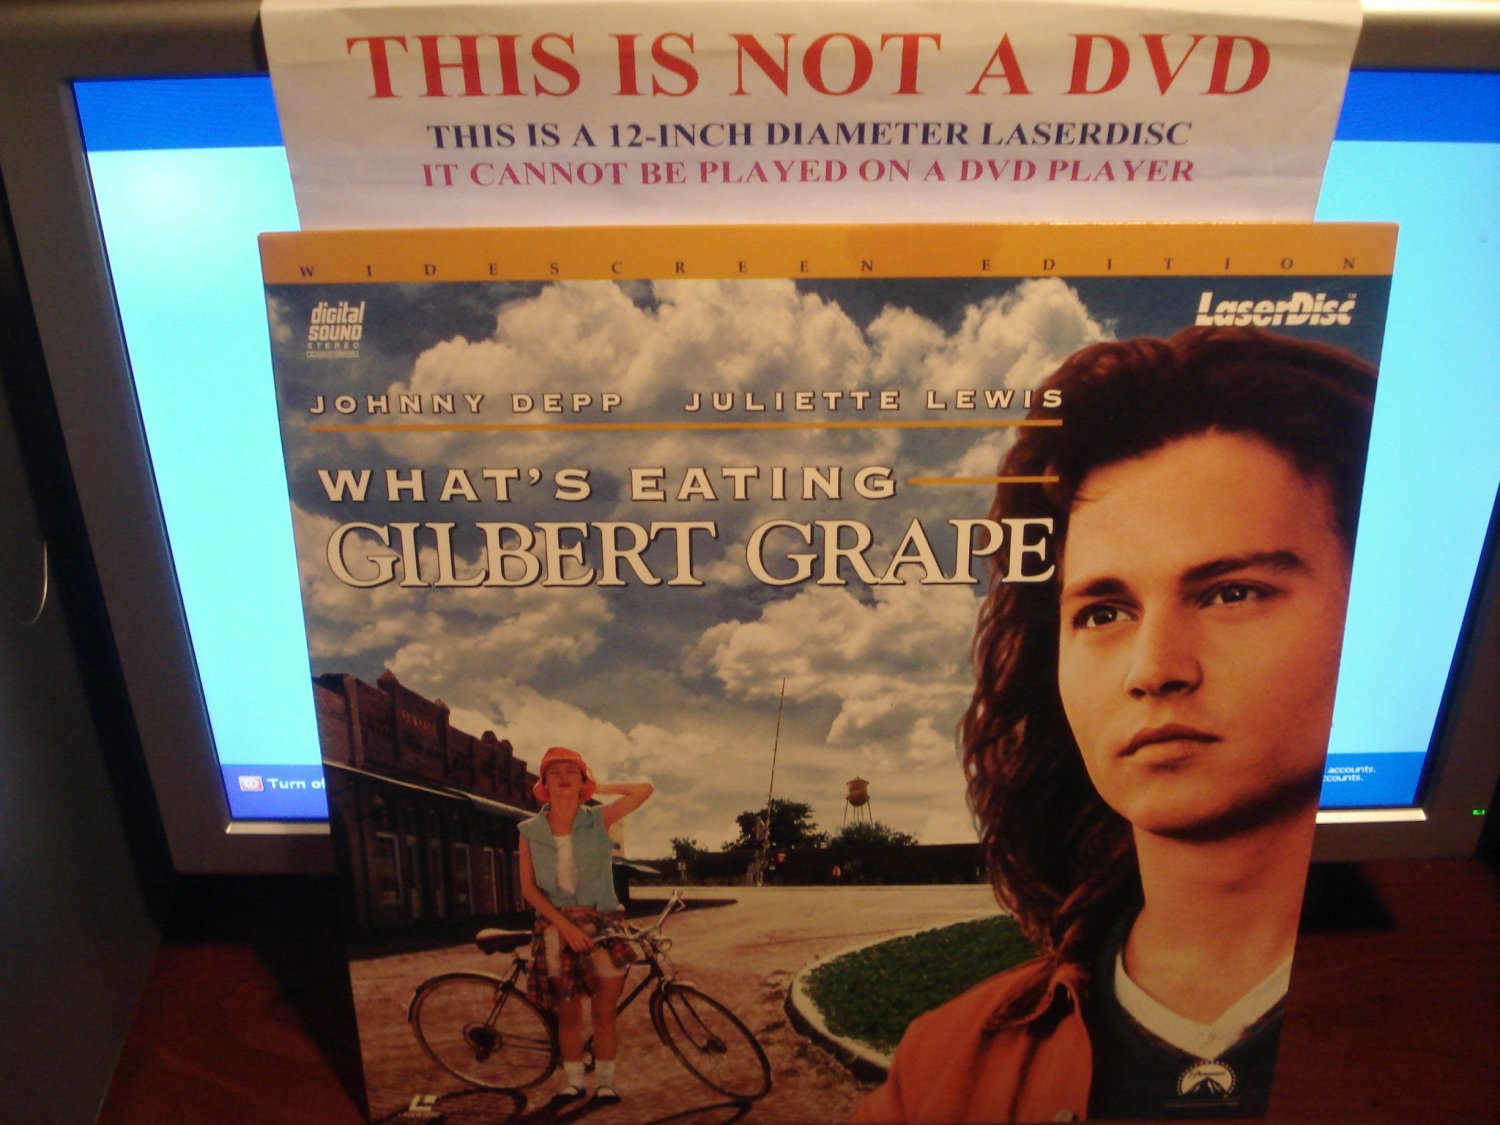 Laserdisc WHAT'S EATING GILBERT GRAPE 1993 Johnny Depp Lot#2 LTBX LD